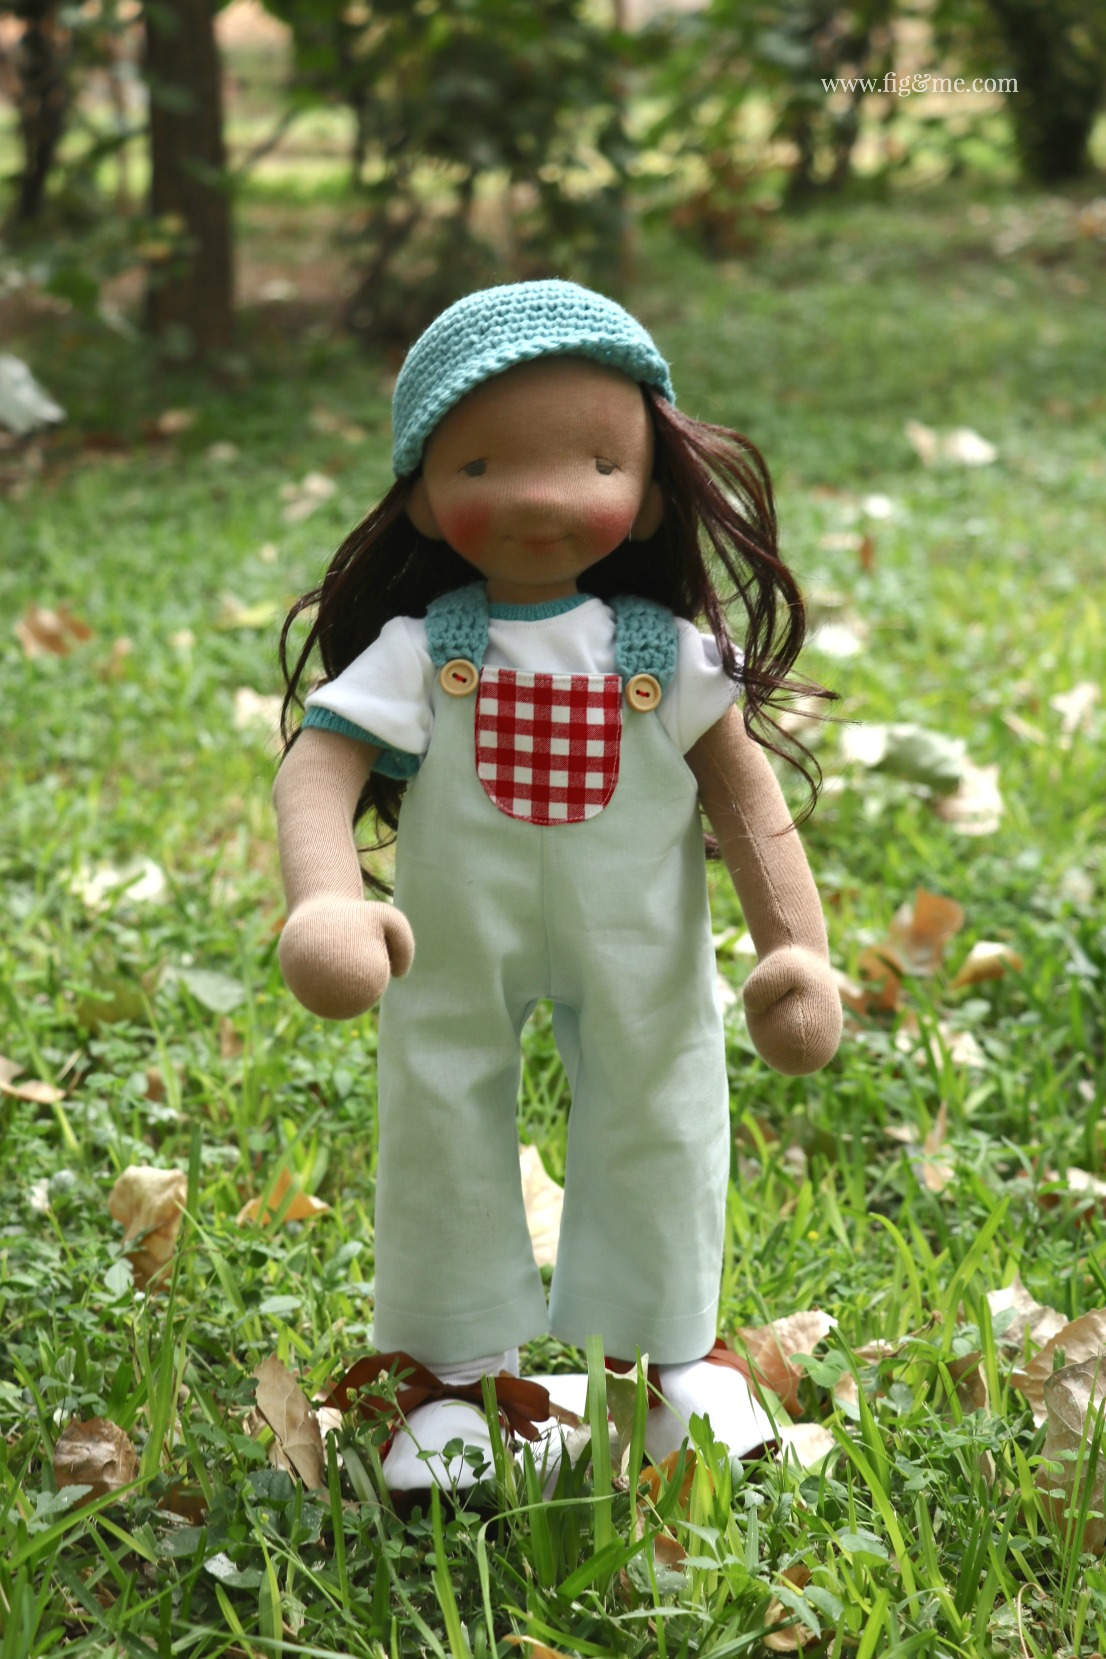 Eileen, wearing her garden overalls made of linen and red gingham. By Fig and Me.